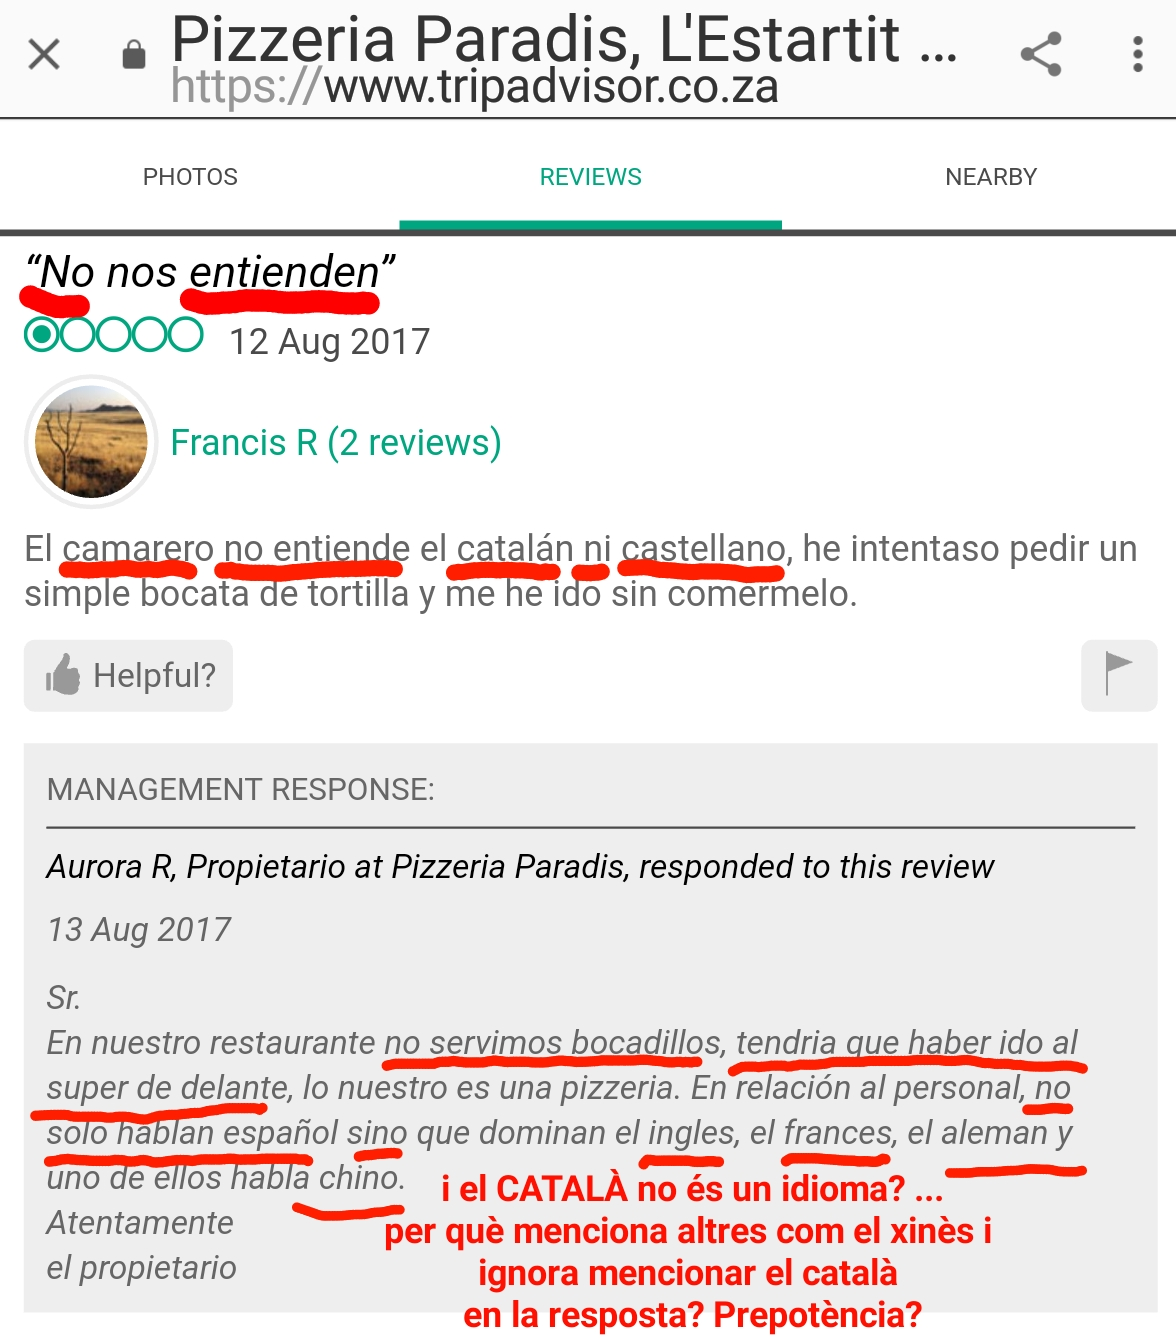 Pizzeria Paradis Estartit català